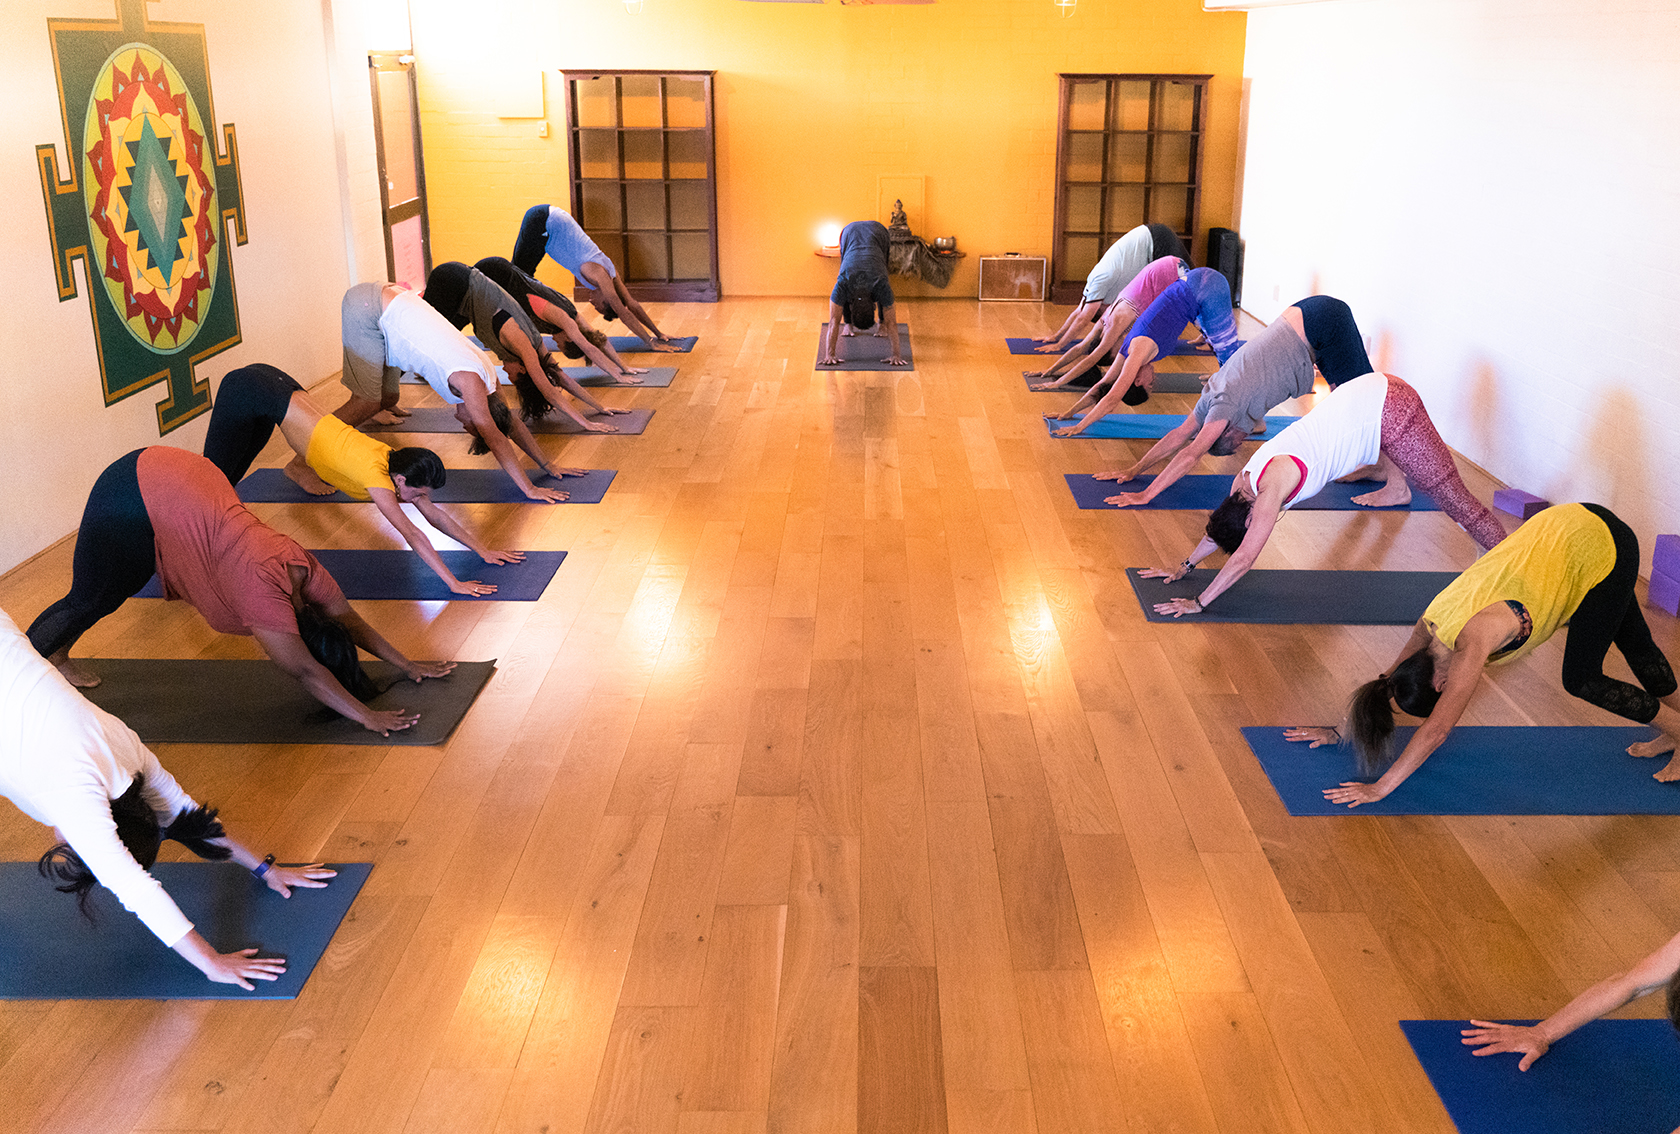 Mysore - You are given an Ashtanga sequence of postures. With individual guidance, help and adjustments by the teacher you progress at your own pace. Ashtanga Yoga Postures are given according to the individual. Focusing on mindfulness breath and nonviolence. The class structure is